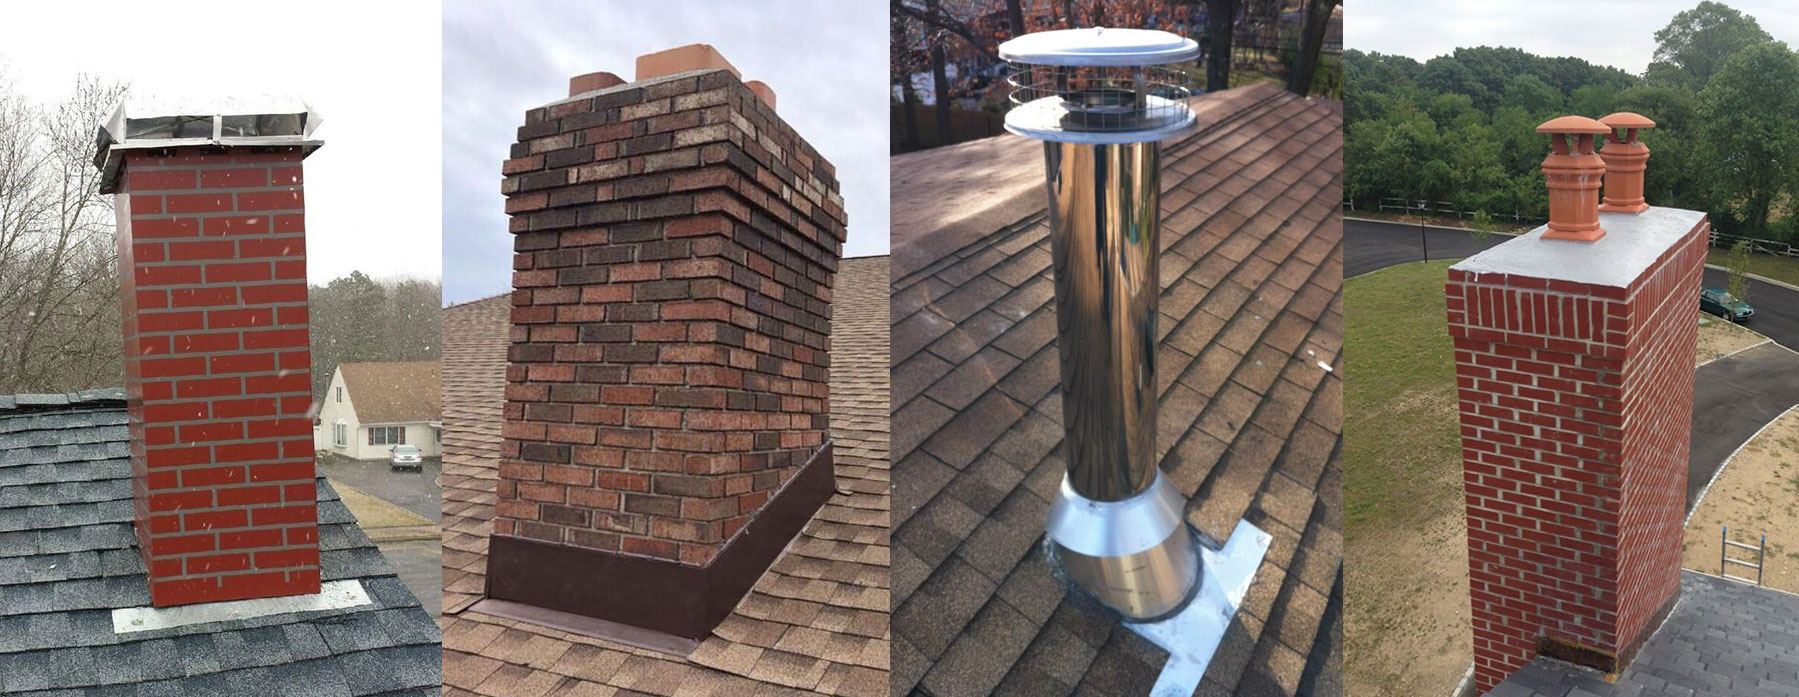 Chimney Repair Bay Shore Ny Chimney Restoration